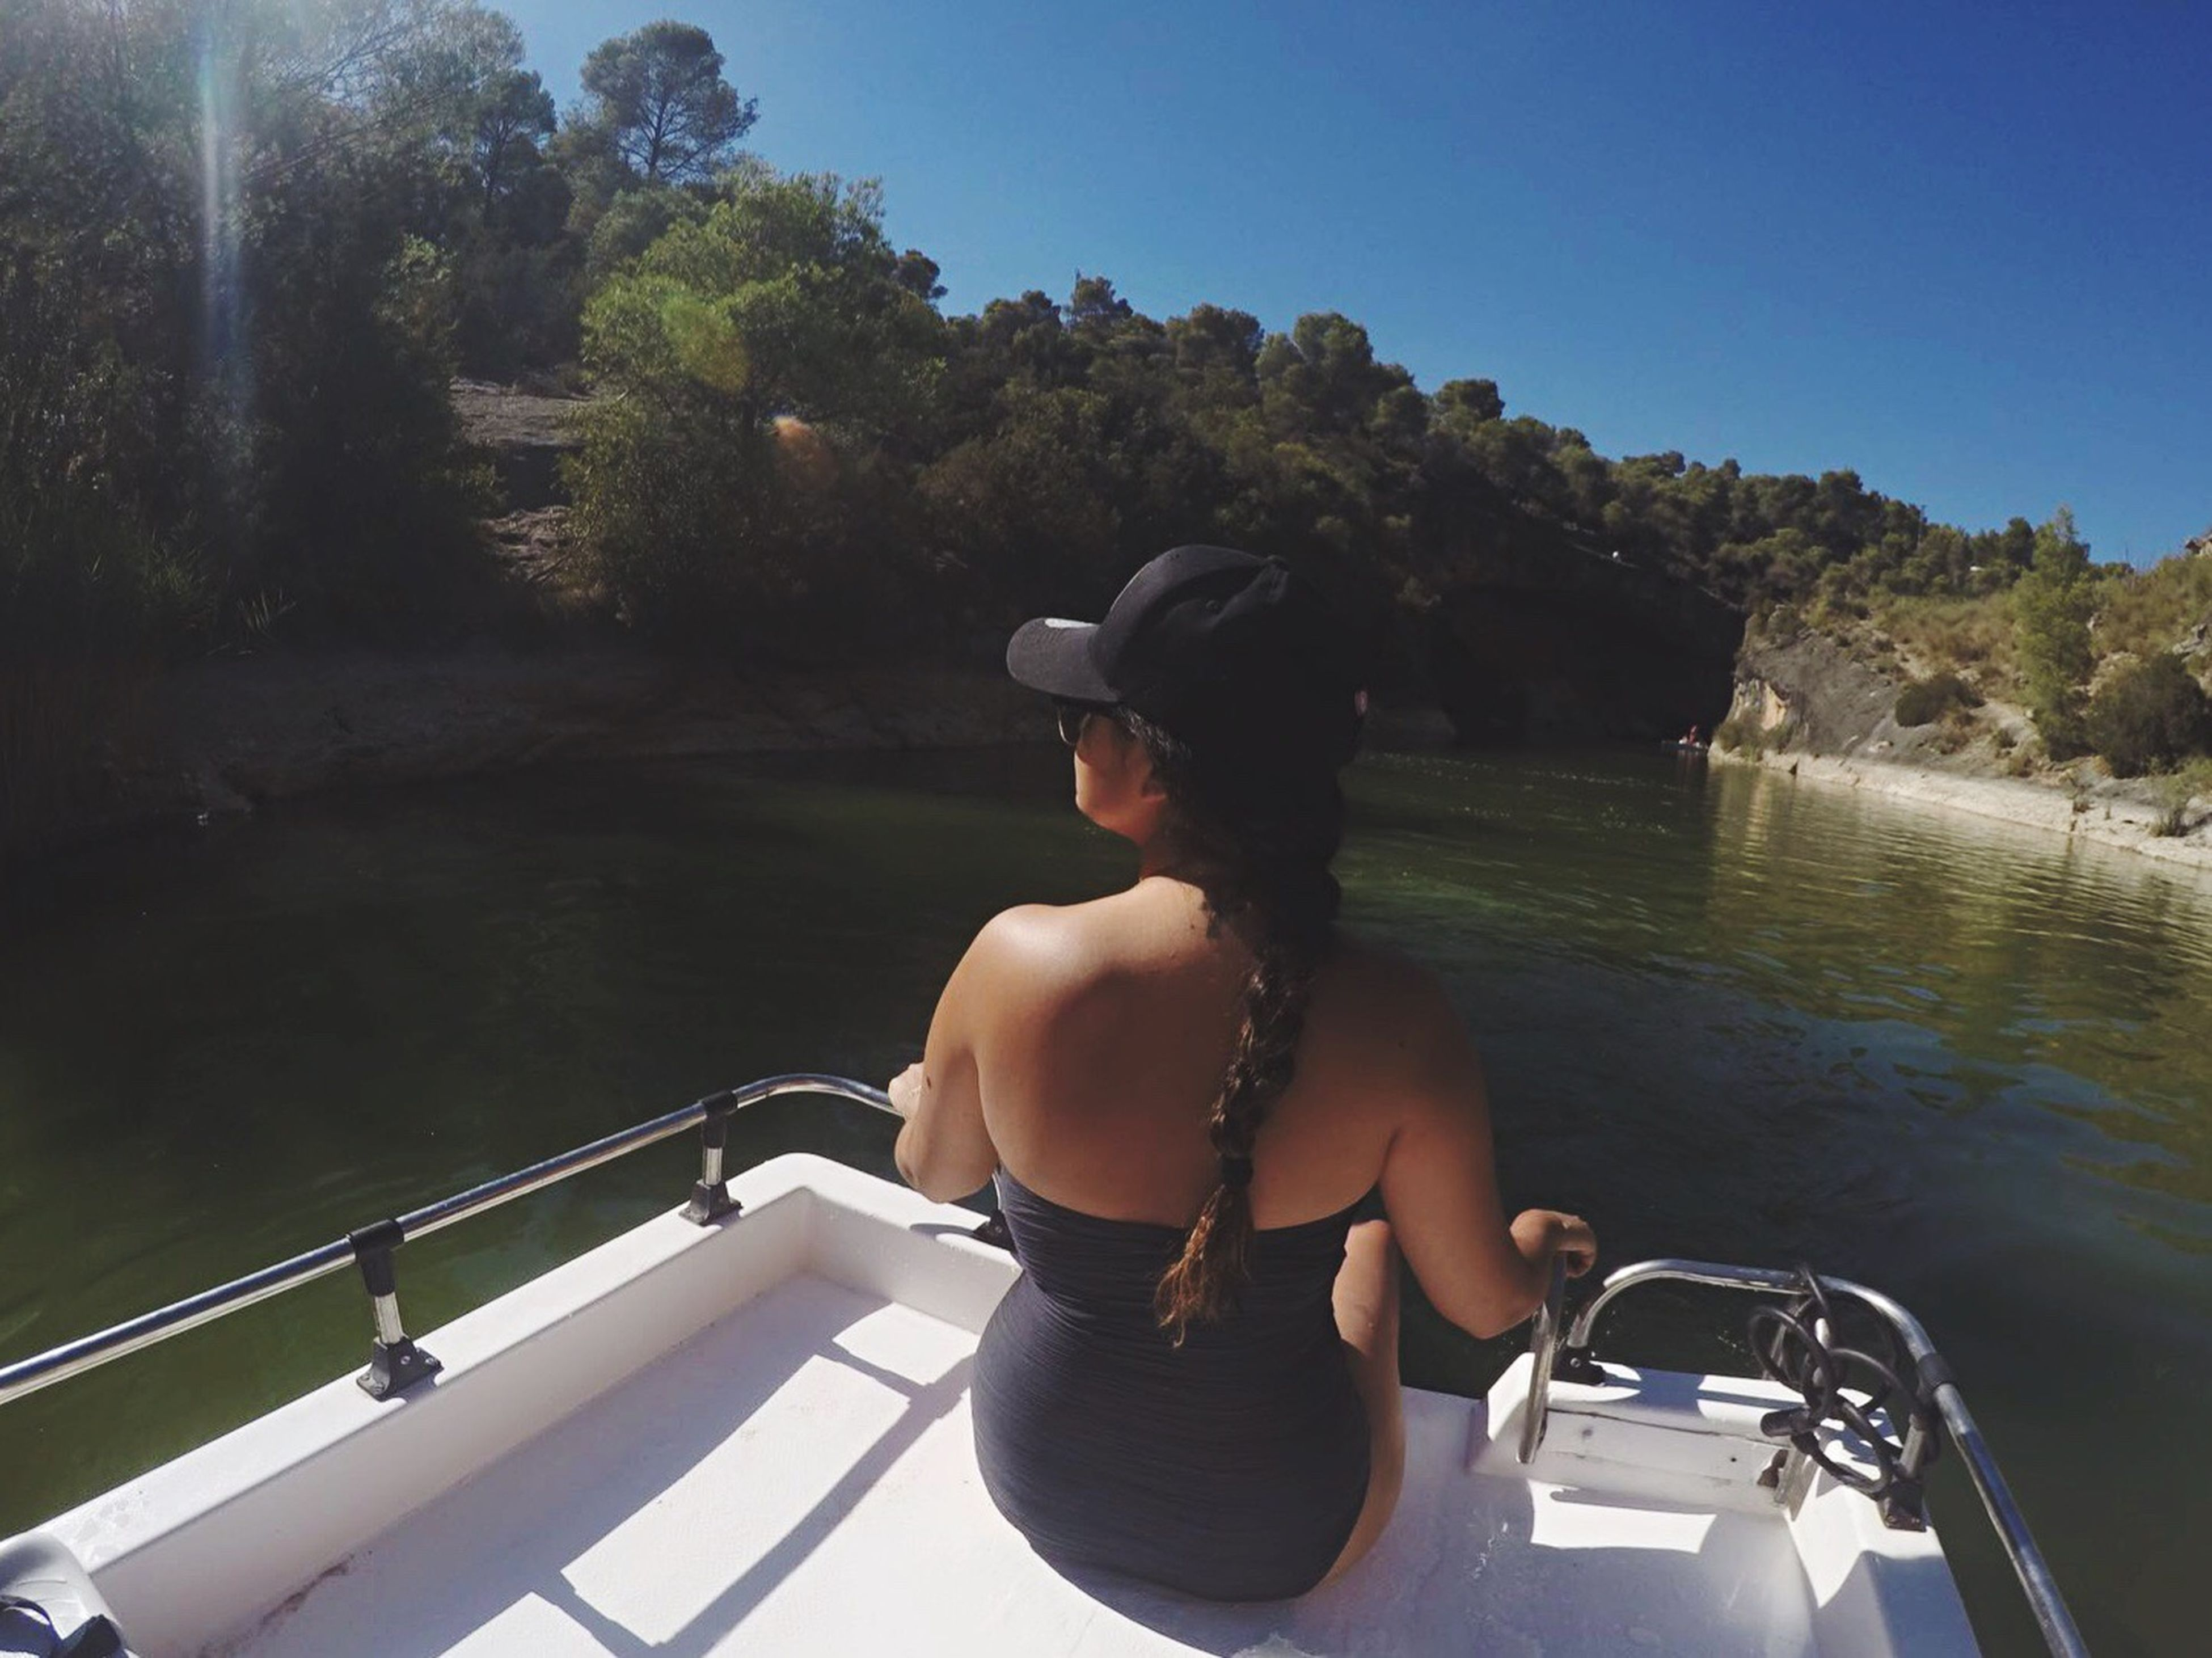 nautical vessel, transportation, boat, water, mode of transport, tree, leisure activity, lifestyles, casual clothing, side view, sunlight, clear sky, vacations, travel, full length, young adult, river, person, day, journey, summer, nature, weekend activities